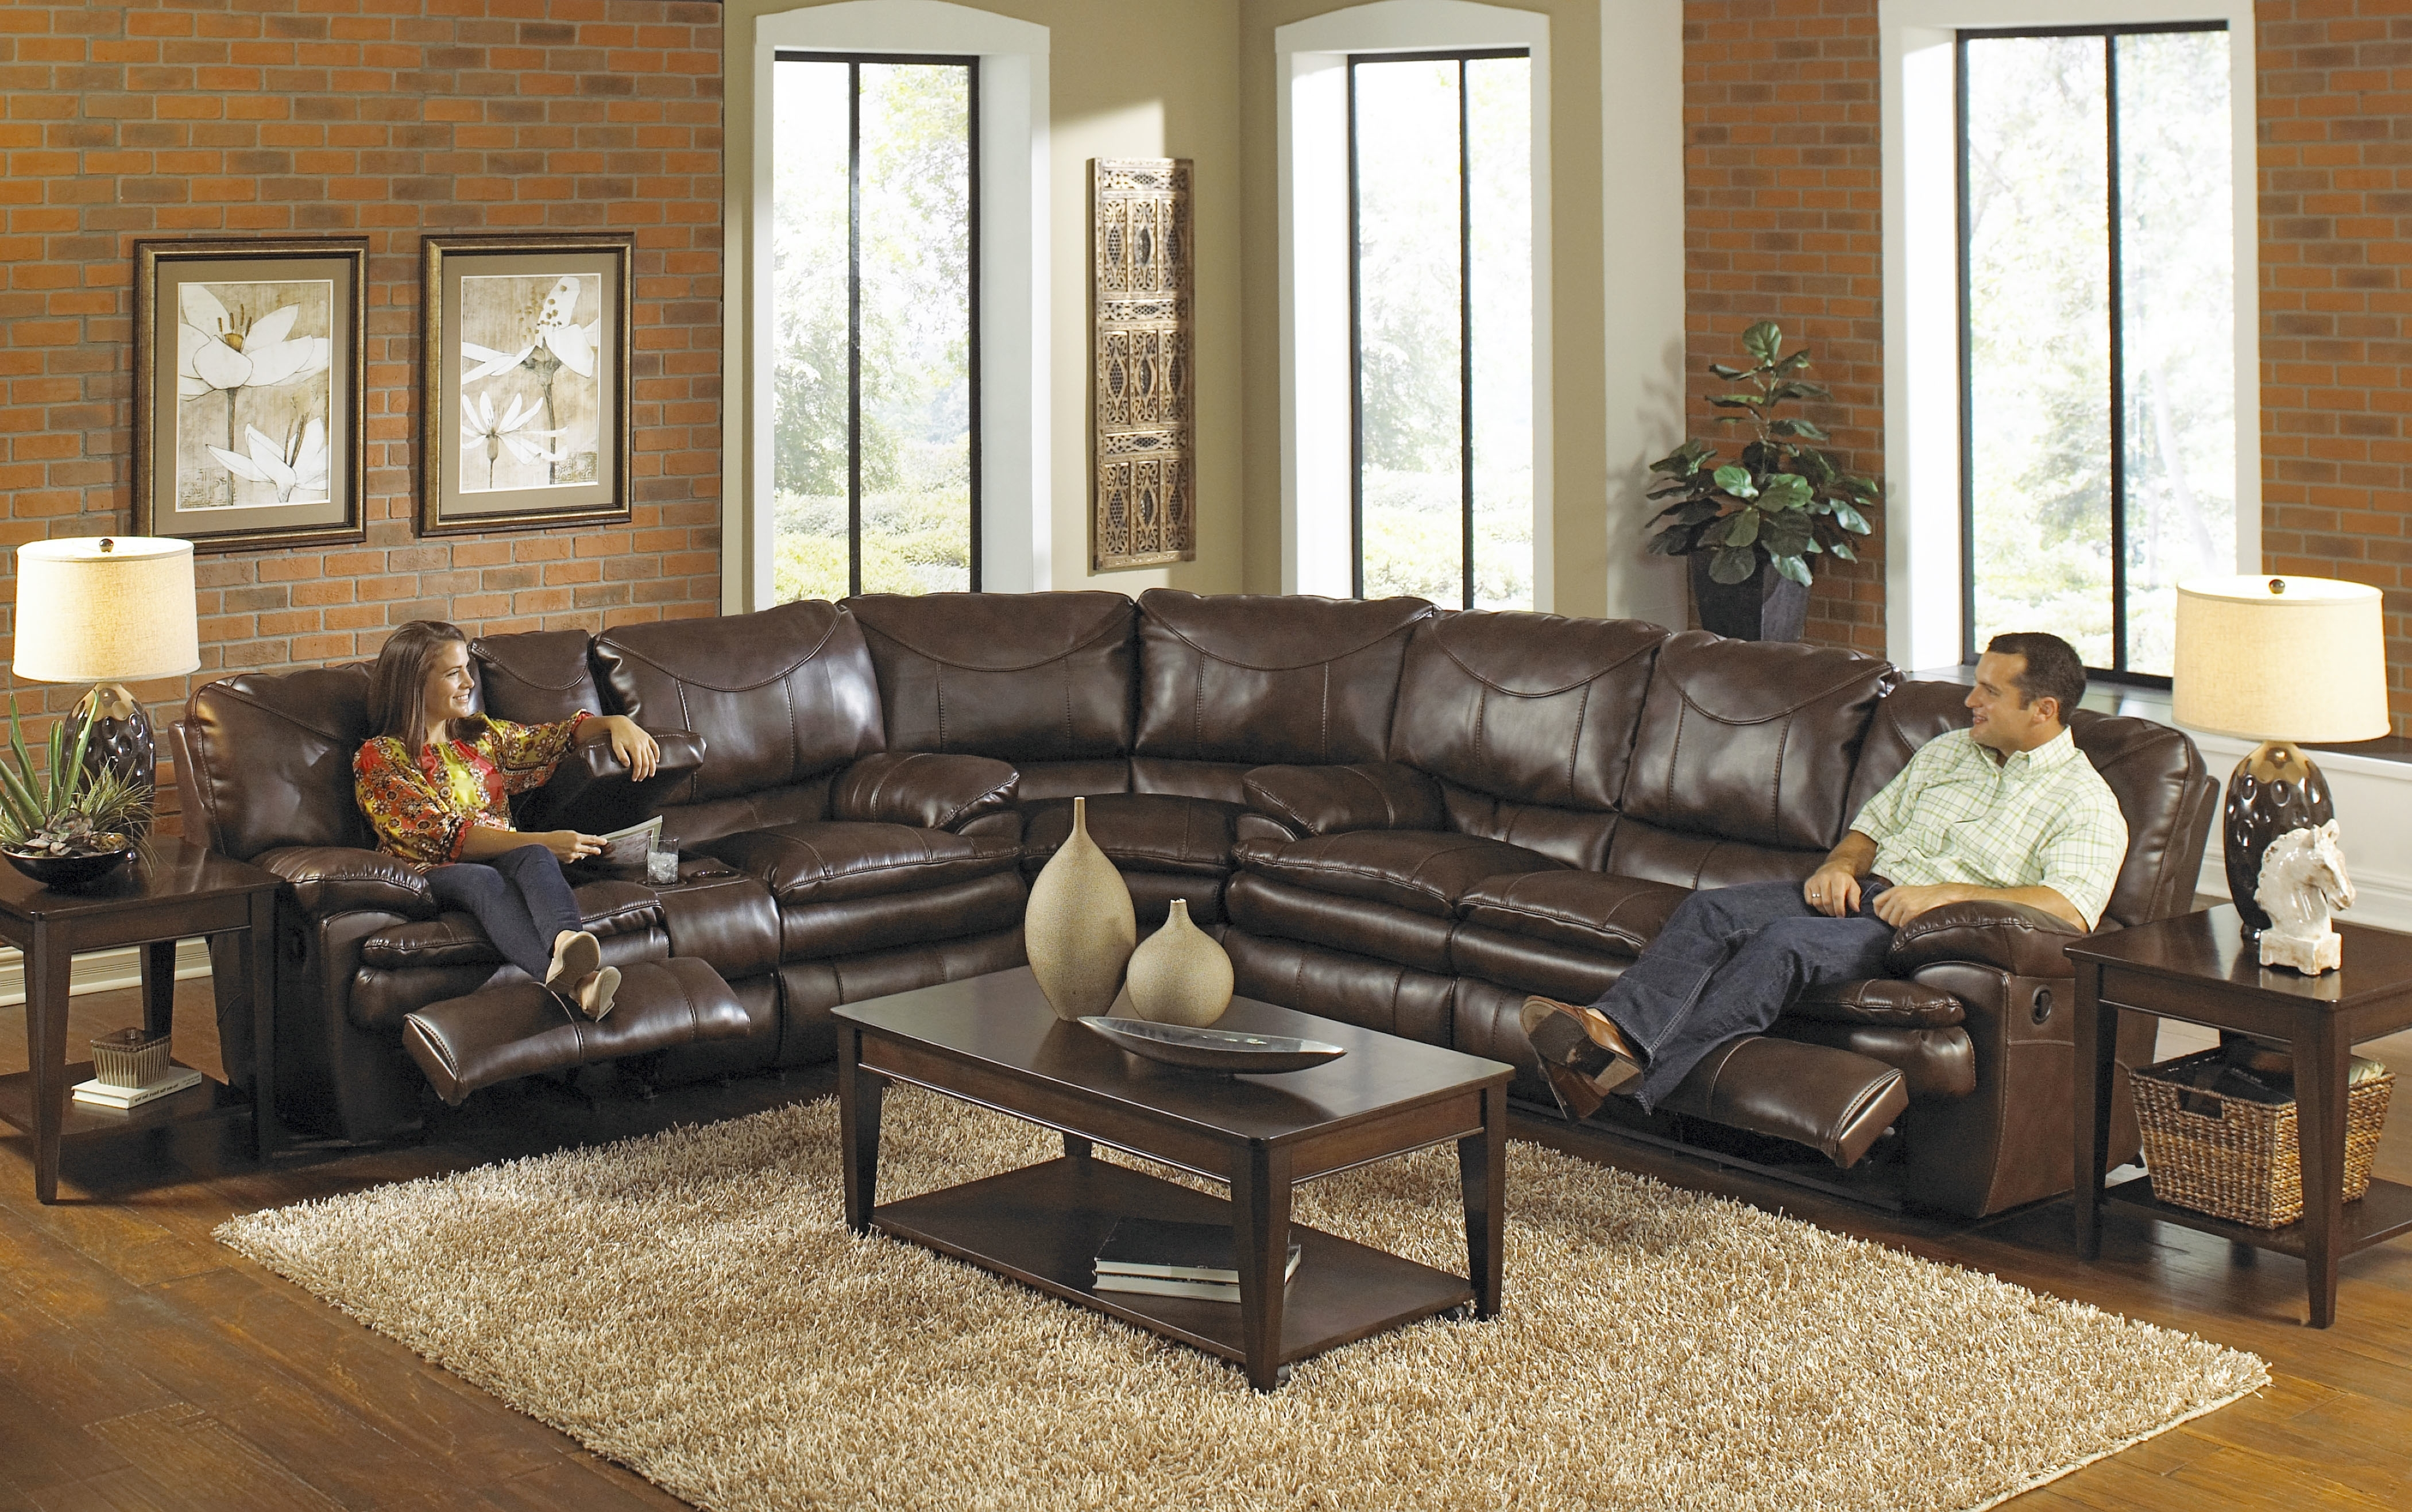 Virginia Sectional Sofas Pertaining To Fashionable Delivered Sofa With Chaise And Recliner Buy Large Sectional Sofas (Gallery 10 of 20)